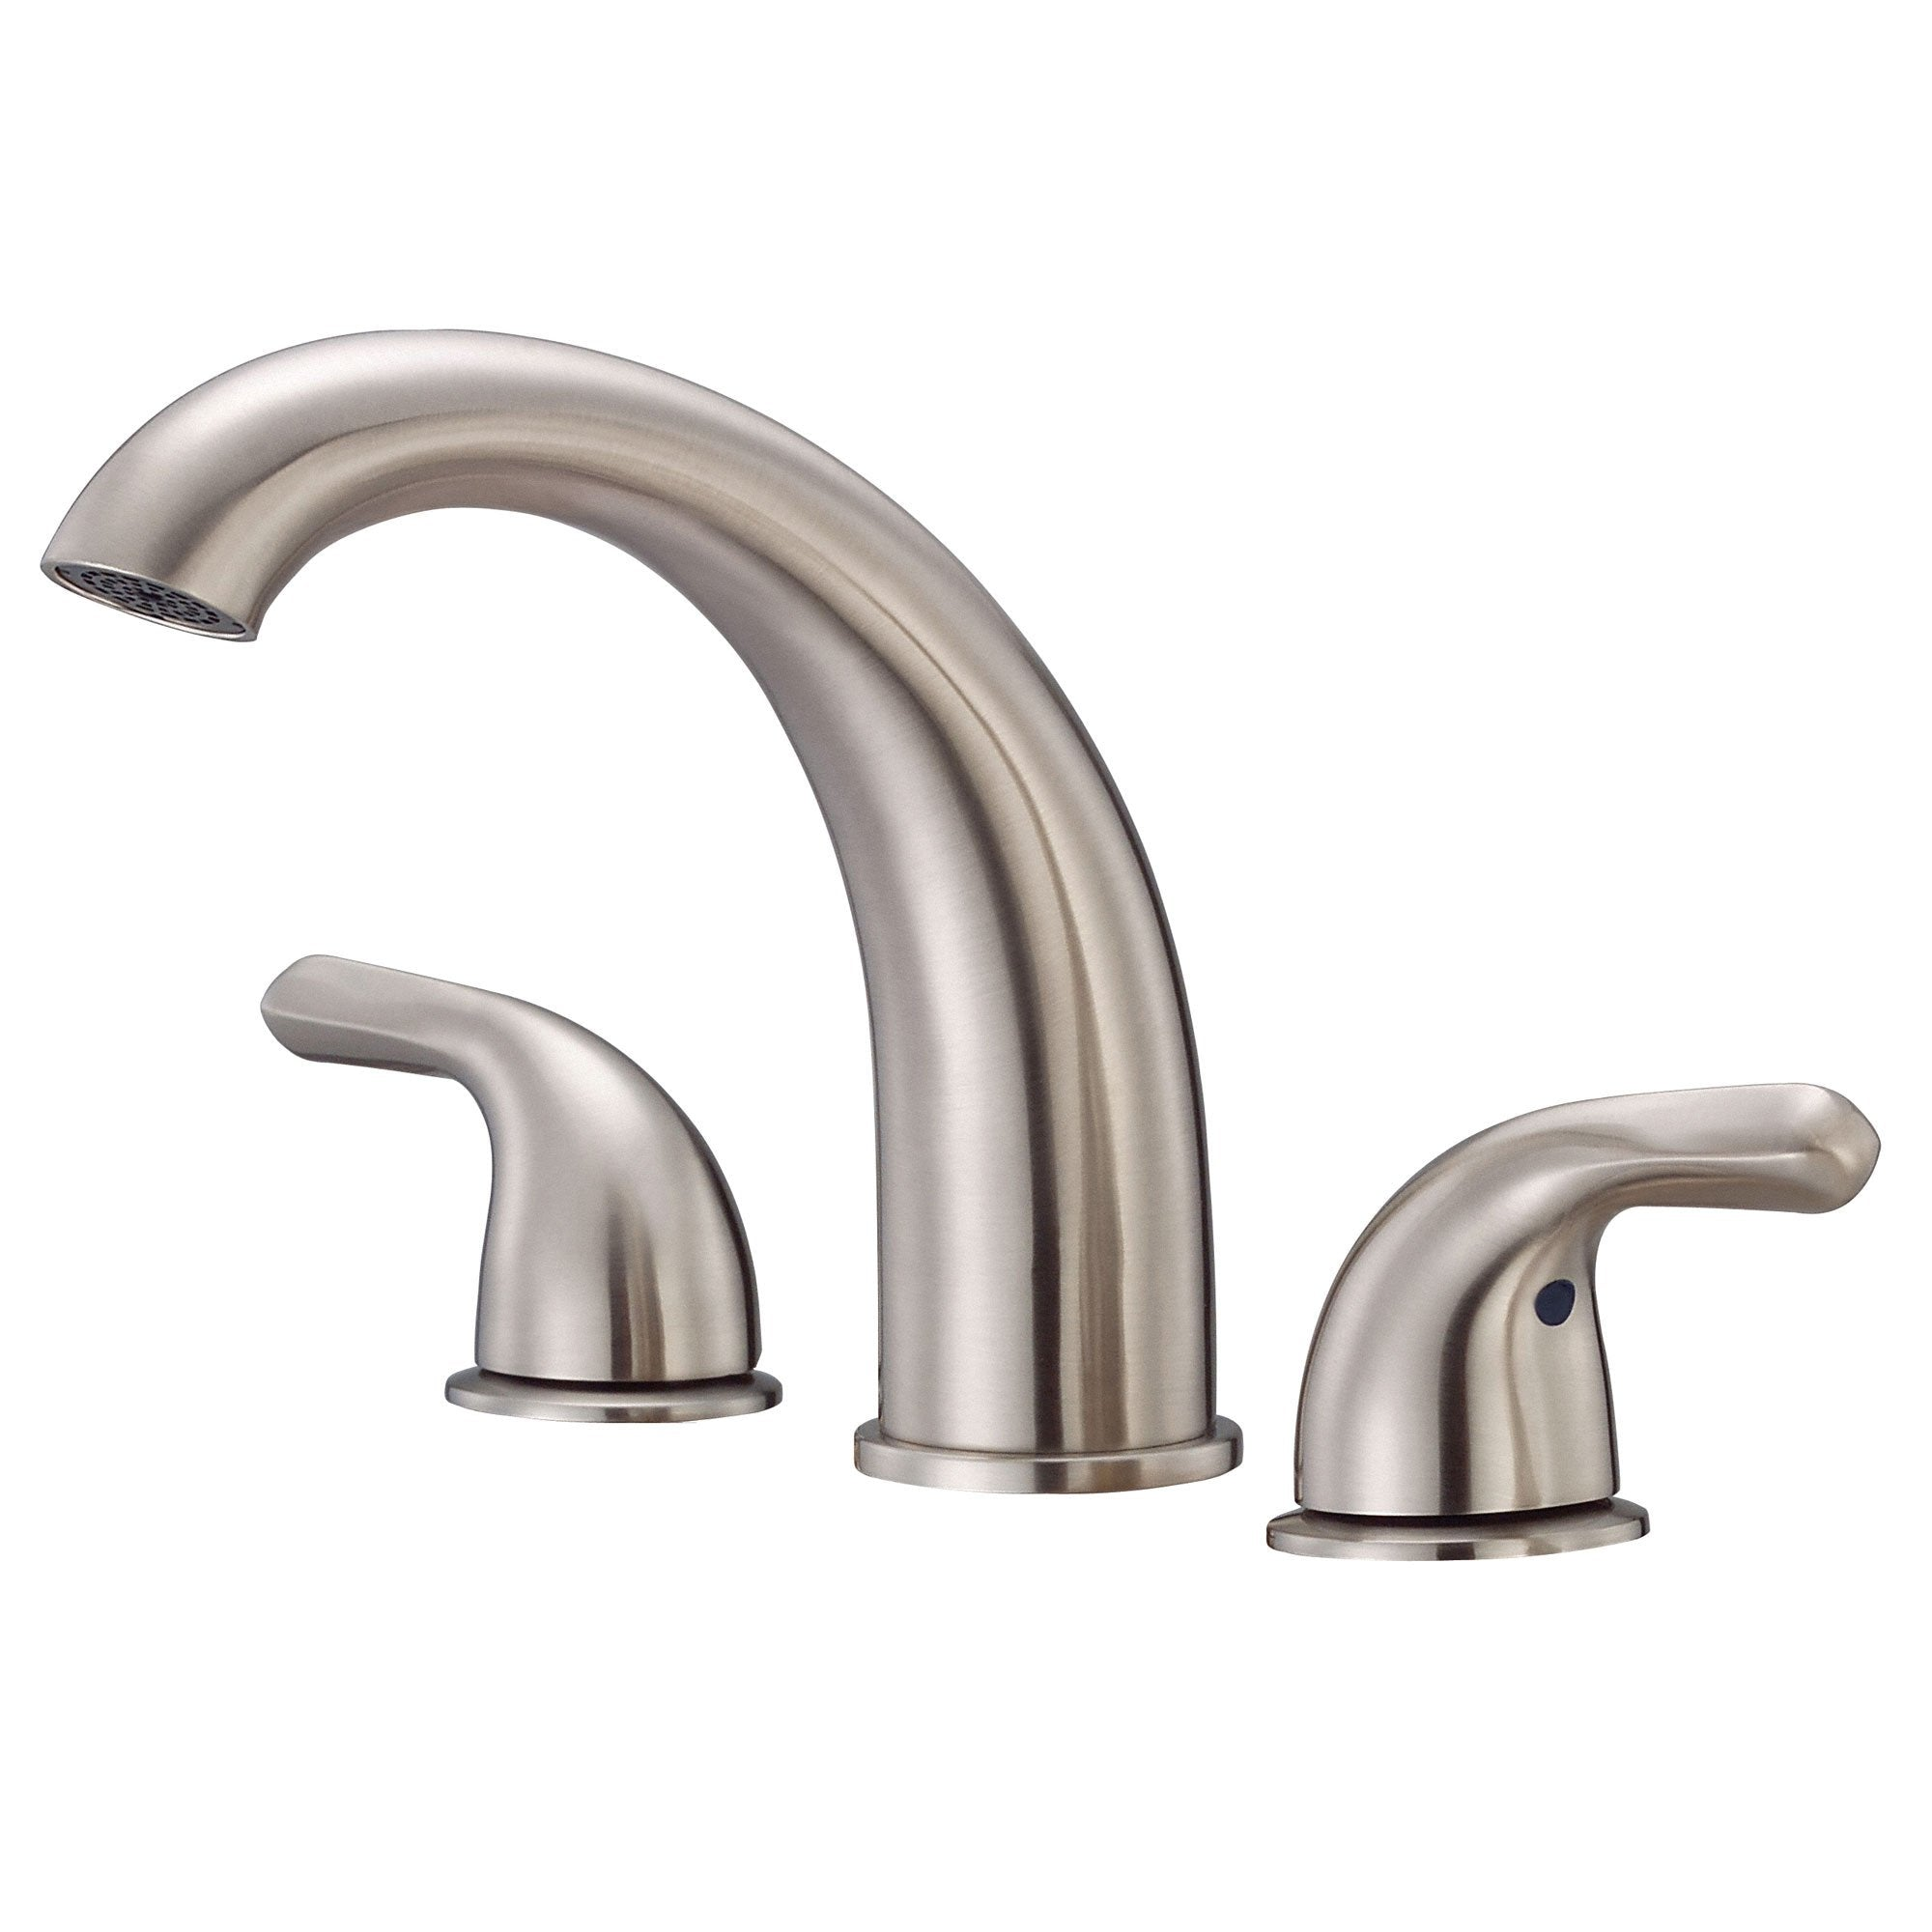 Danze Melrose Brushed Nickel 2 Handle Roman Bath Tub Filler Faucet INCLUDES Rough-in Valve